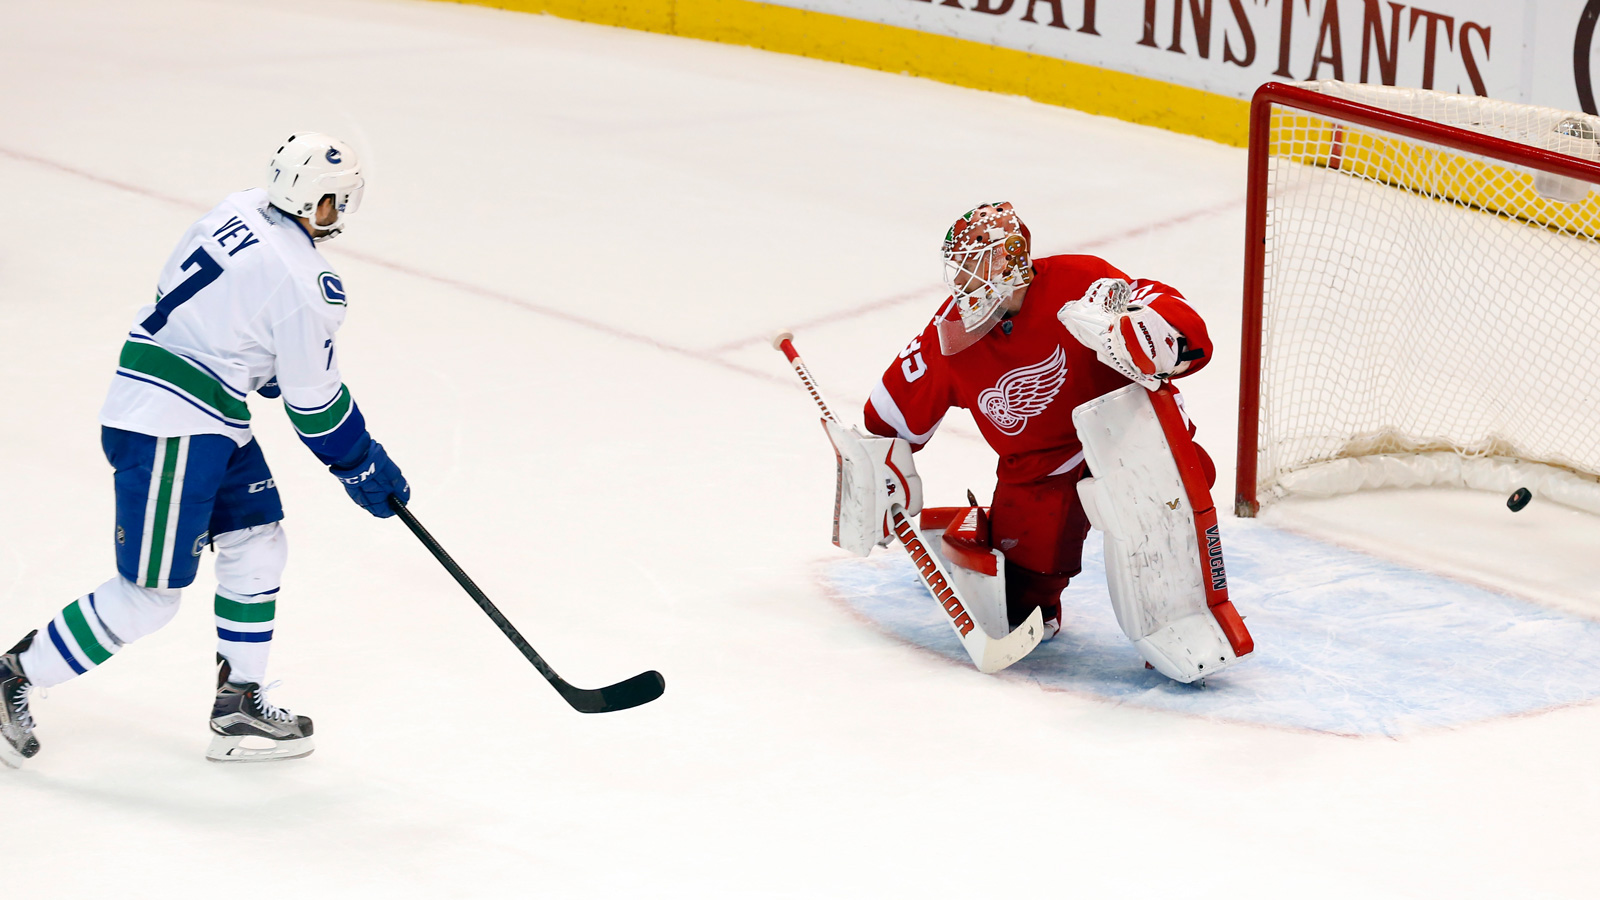 Red Wings fall to Canucks in shootout 4-3